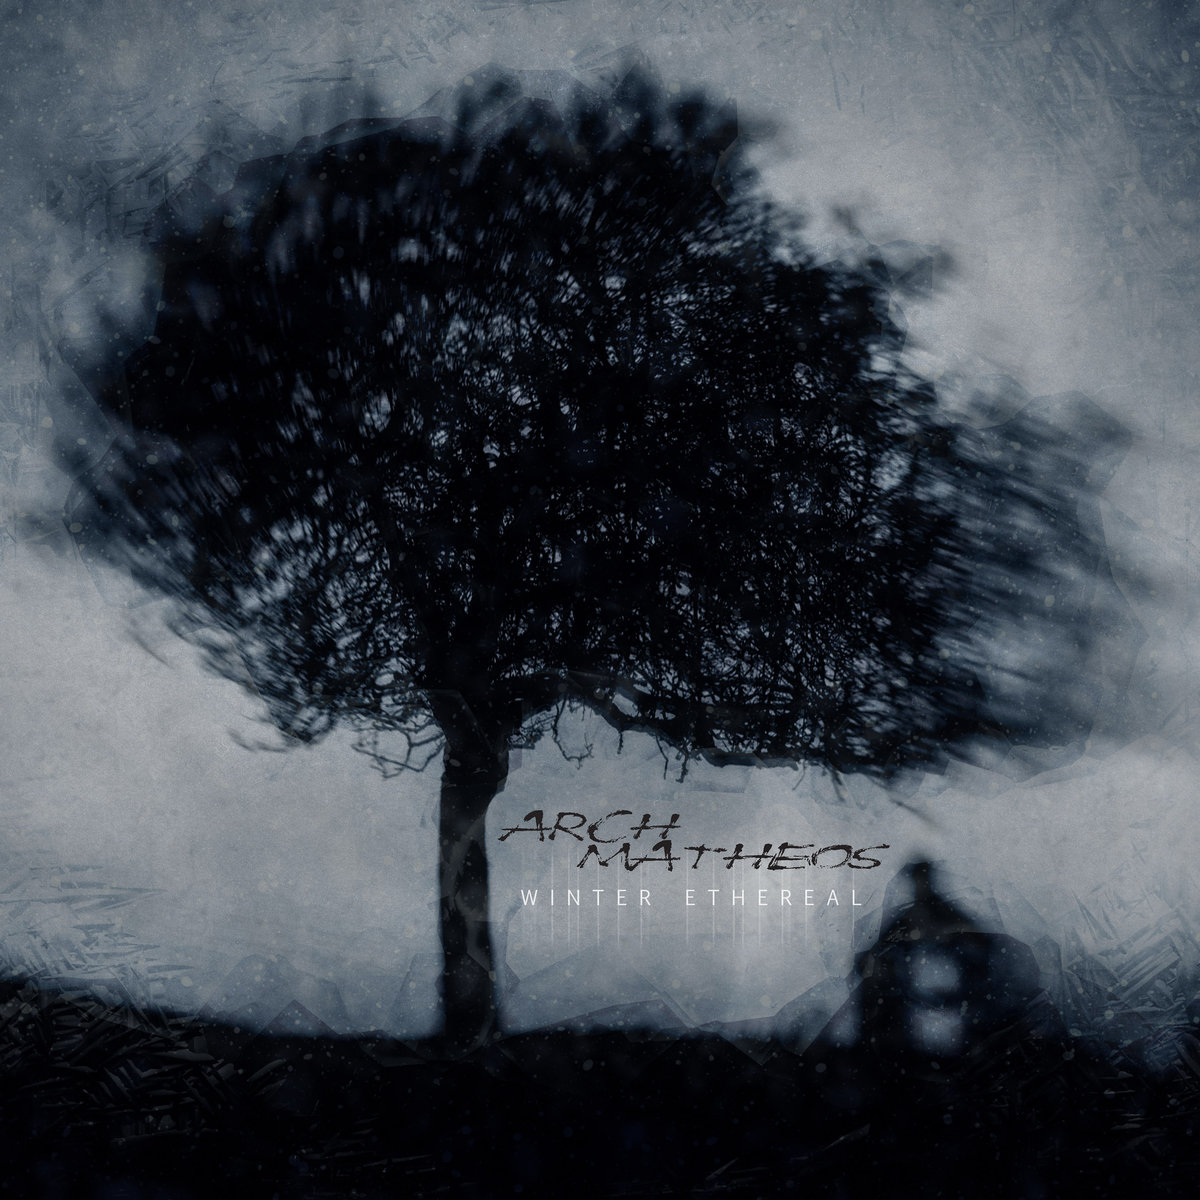 Arch - Matheos - Winter Ethereal - Album Cover